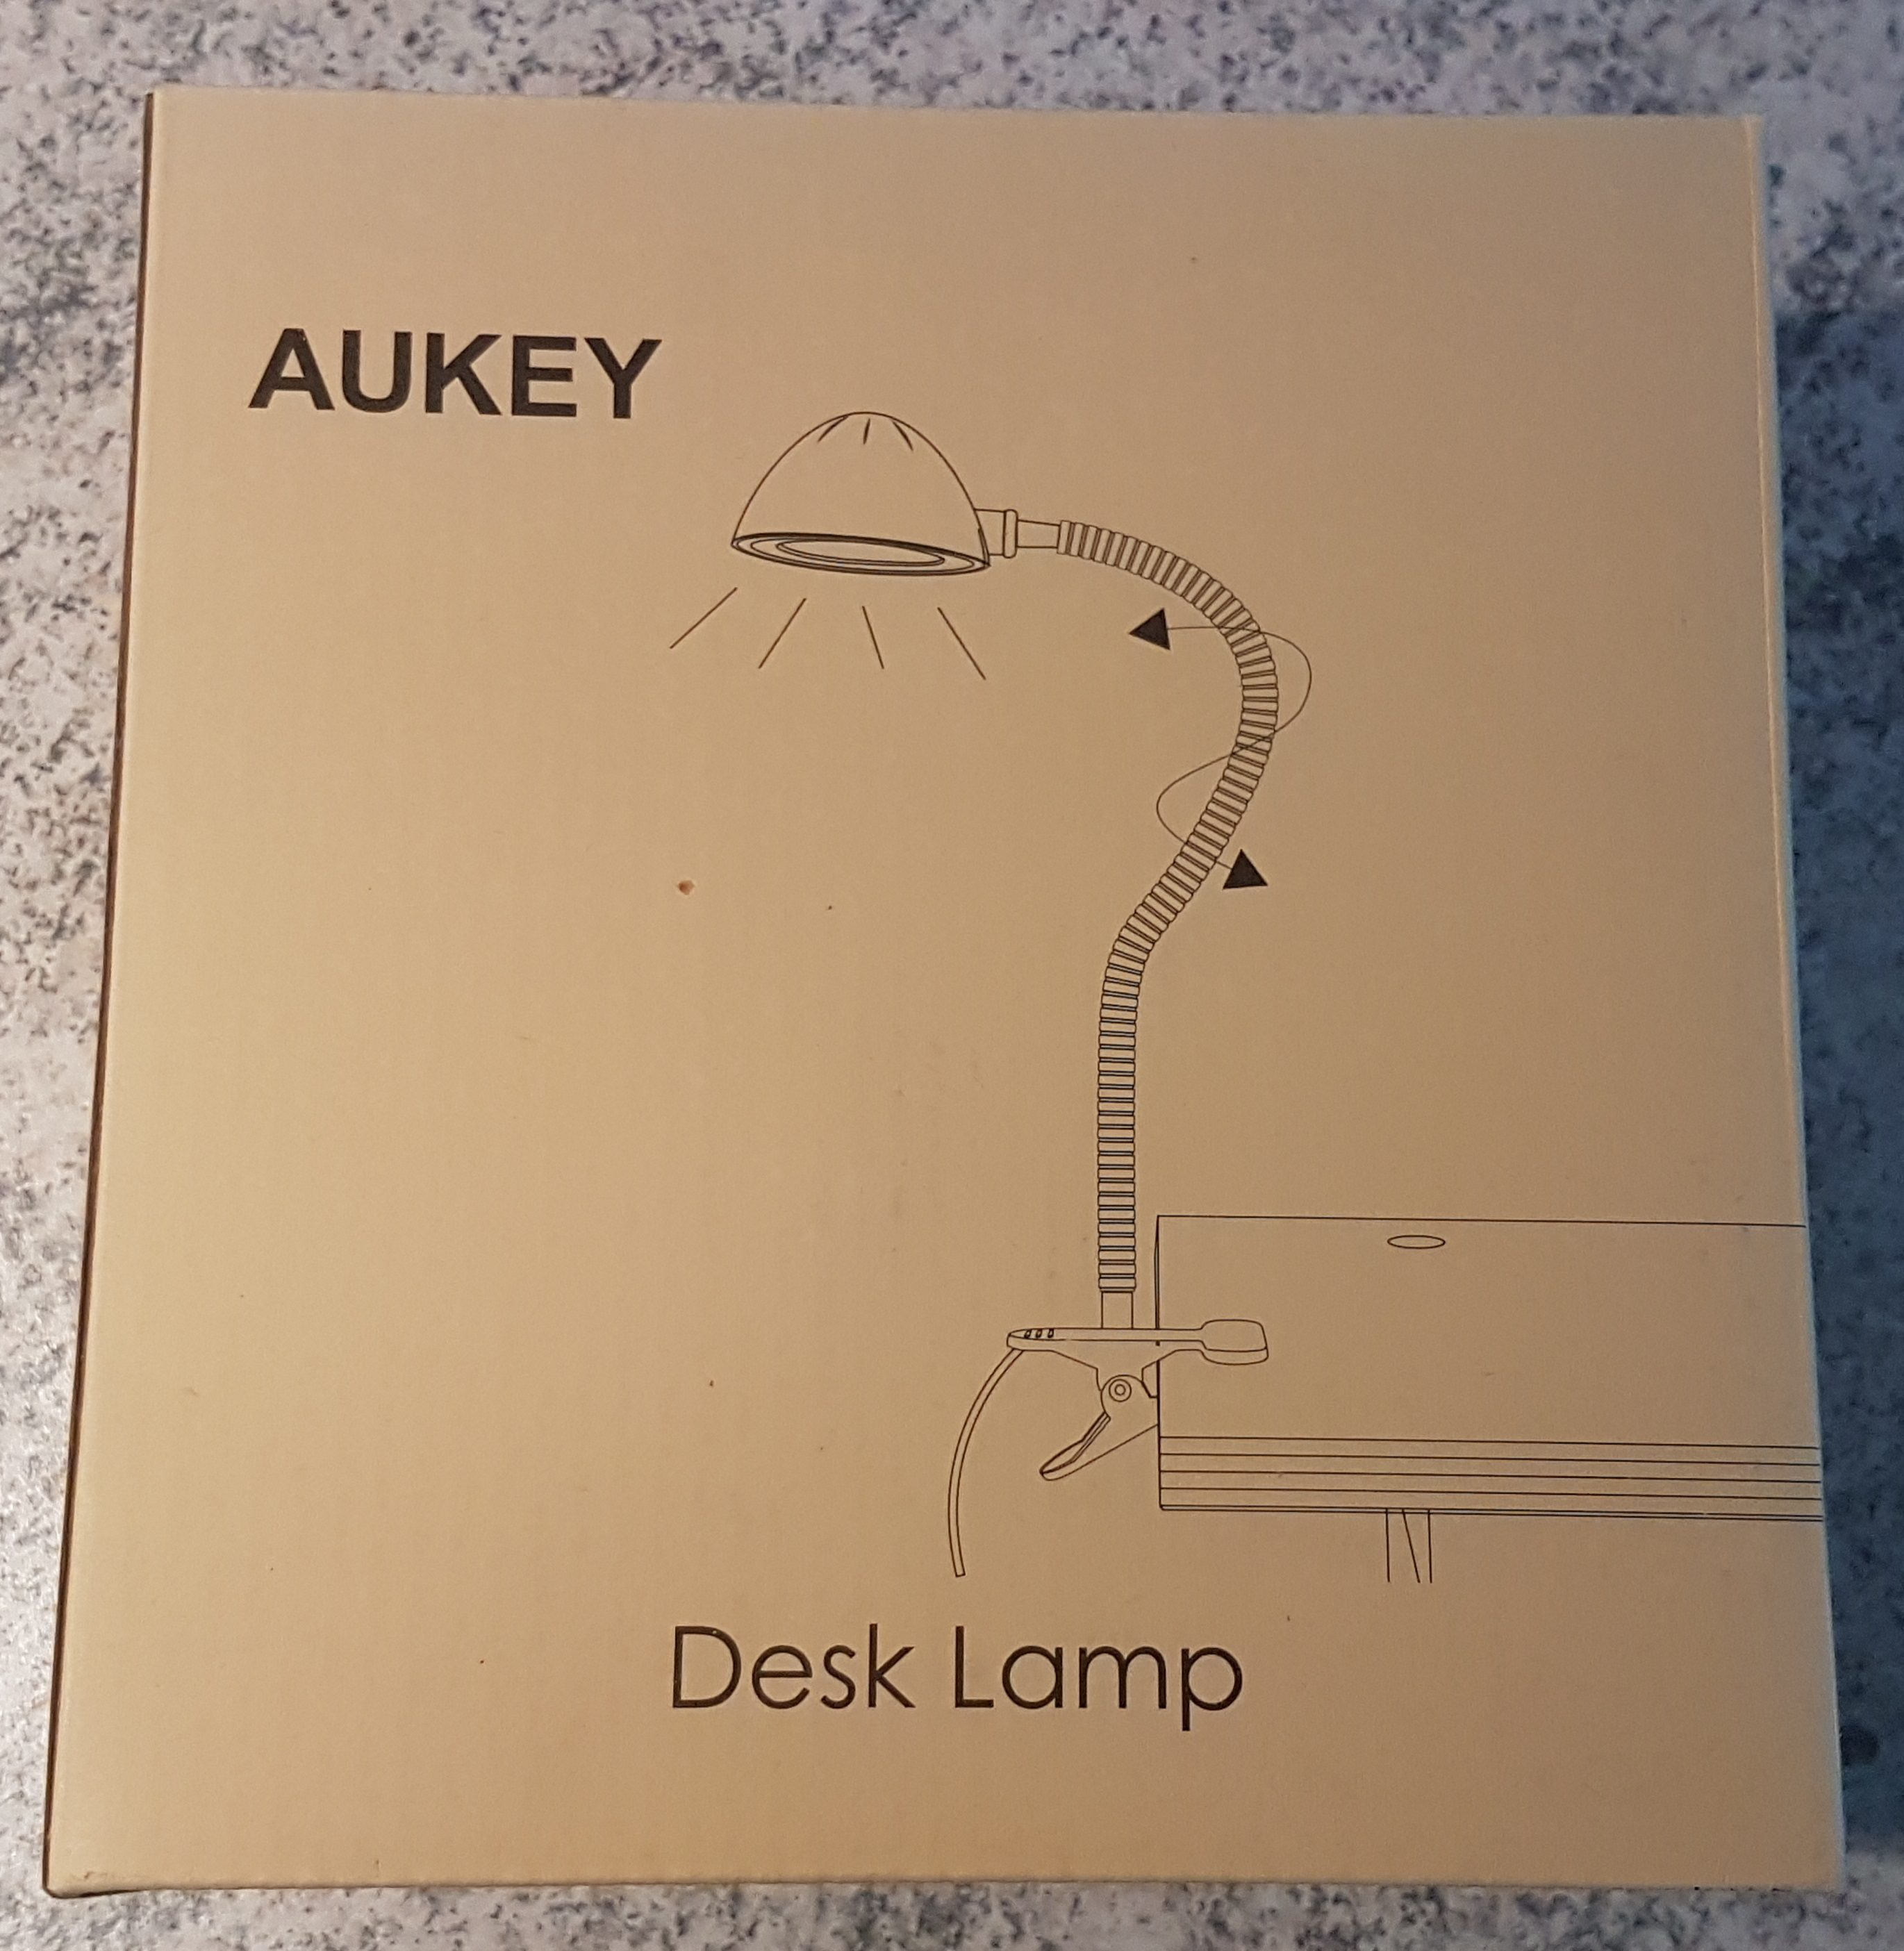 aukey-led-klemmleuchte-verpackung